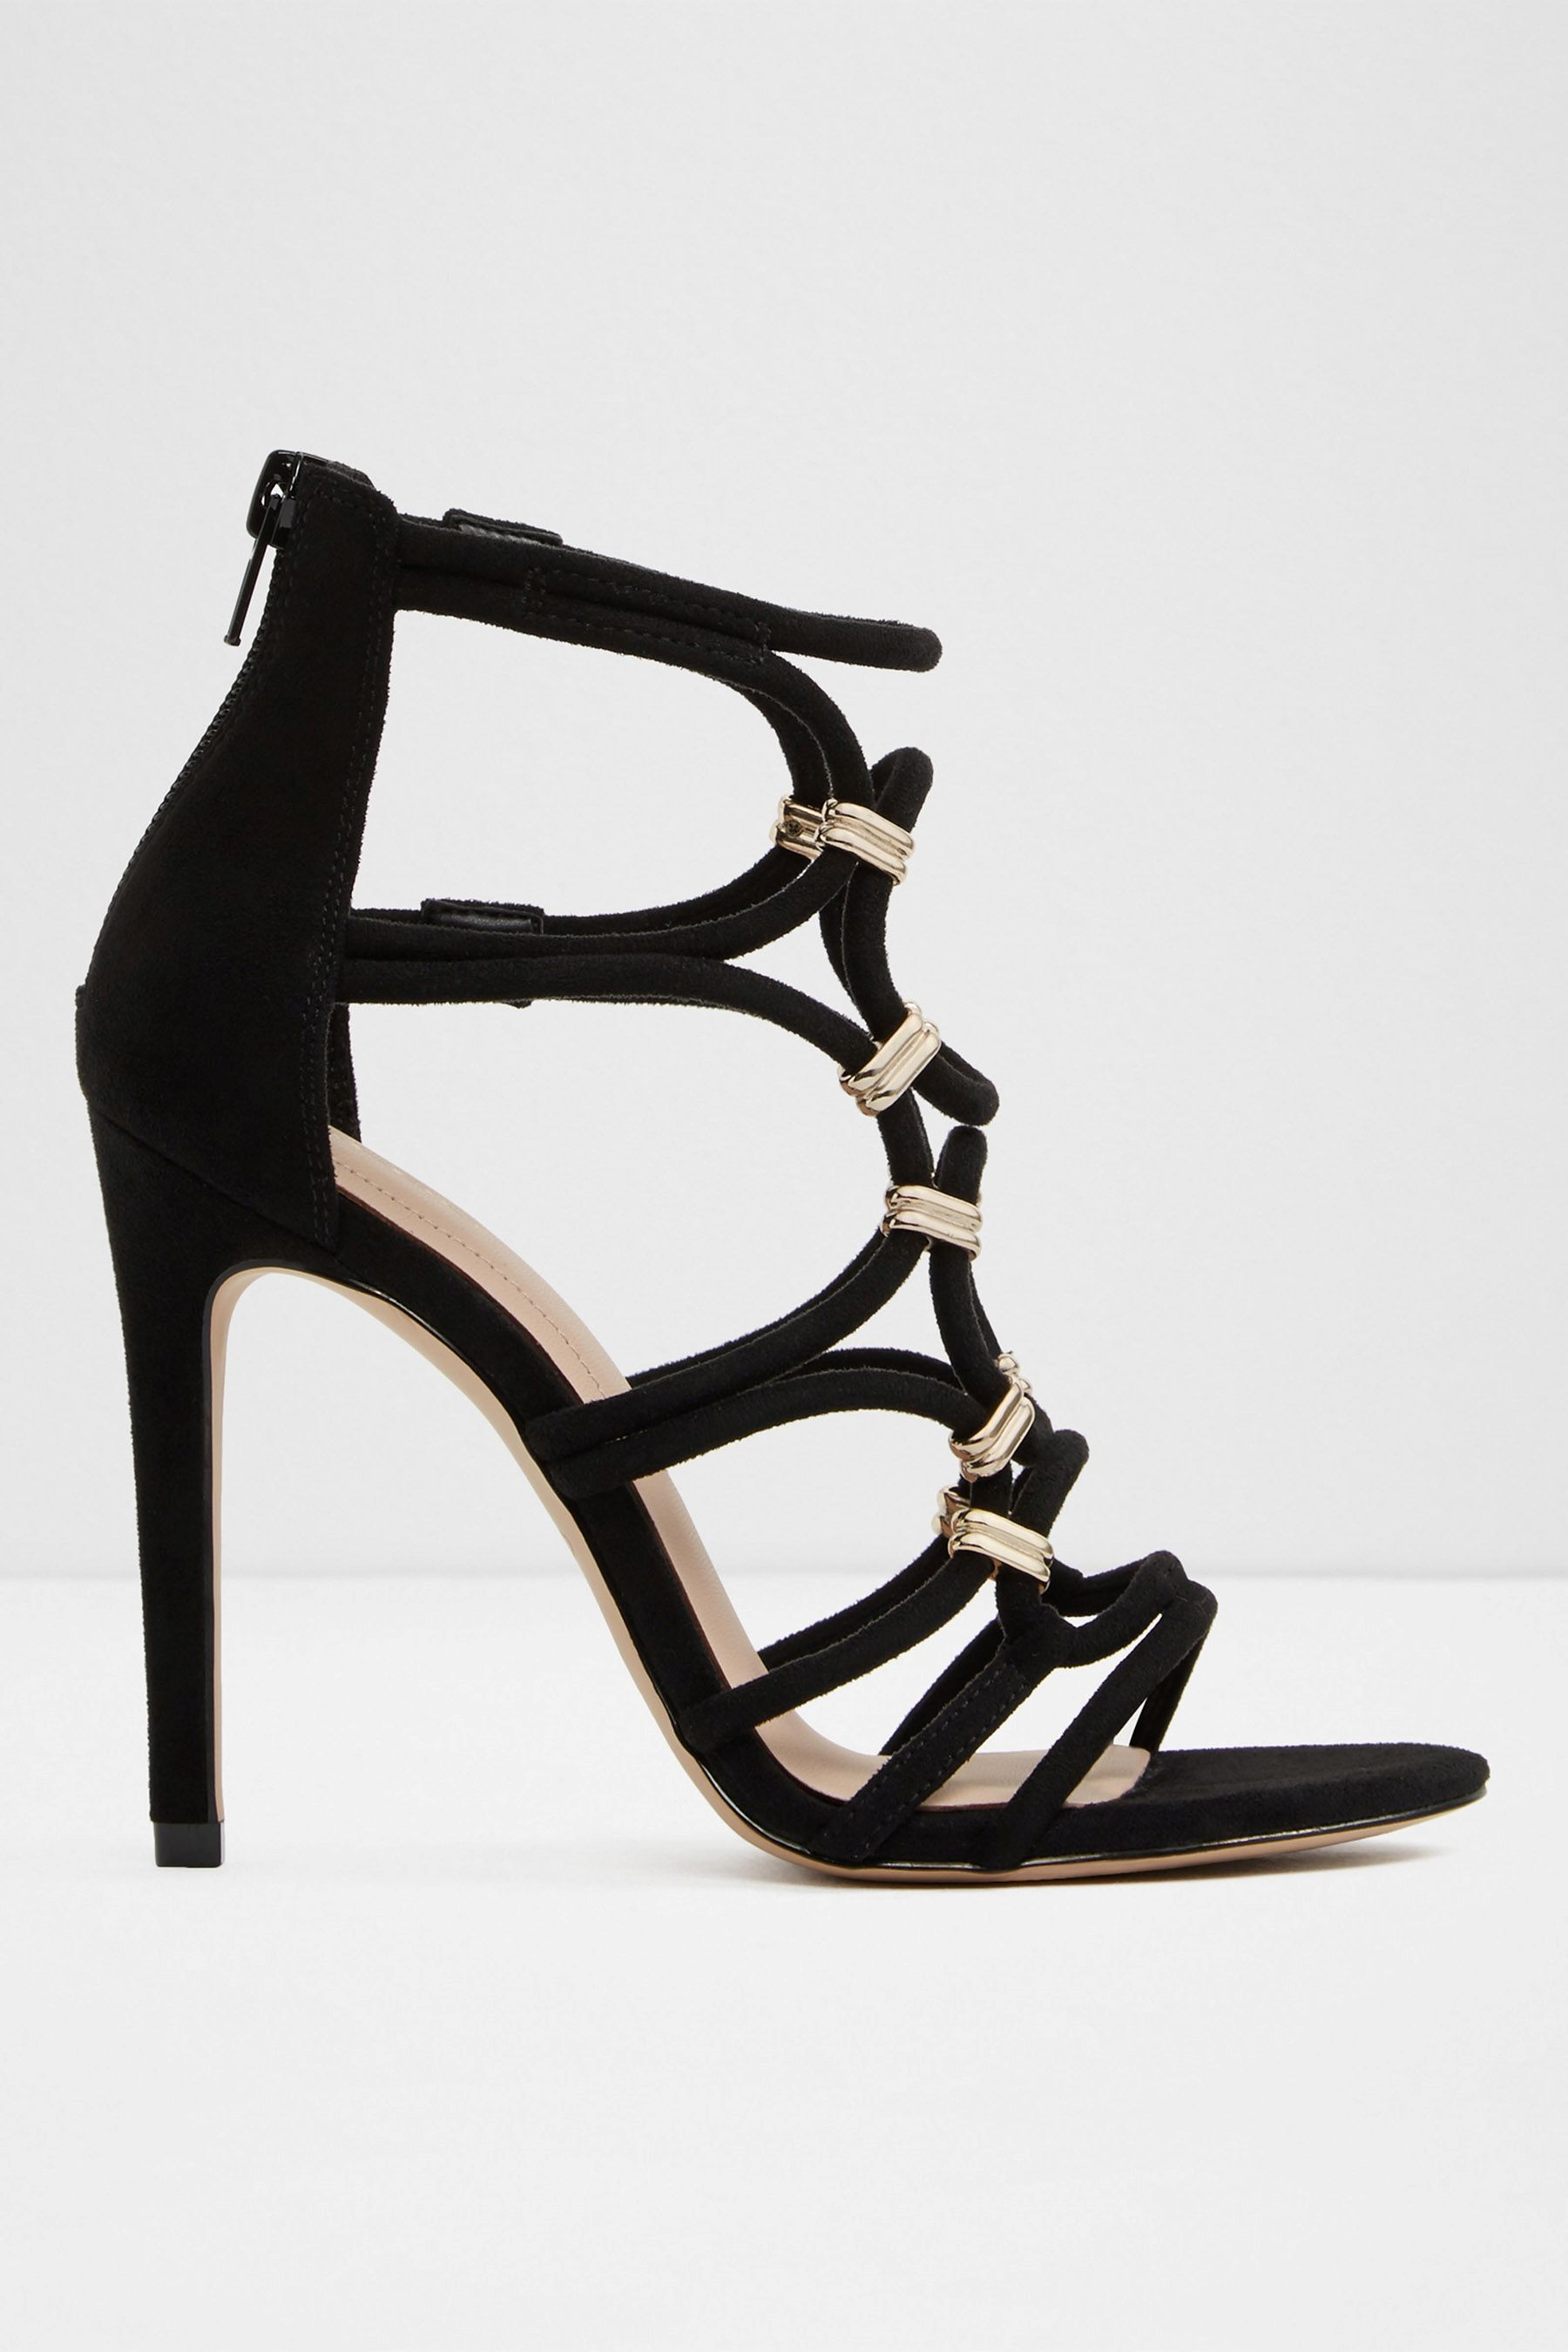 456b53ae3fd Womens Aldo Caged Heel Sandal - Black | Products | Caged heels ...